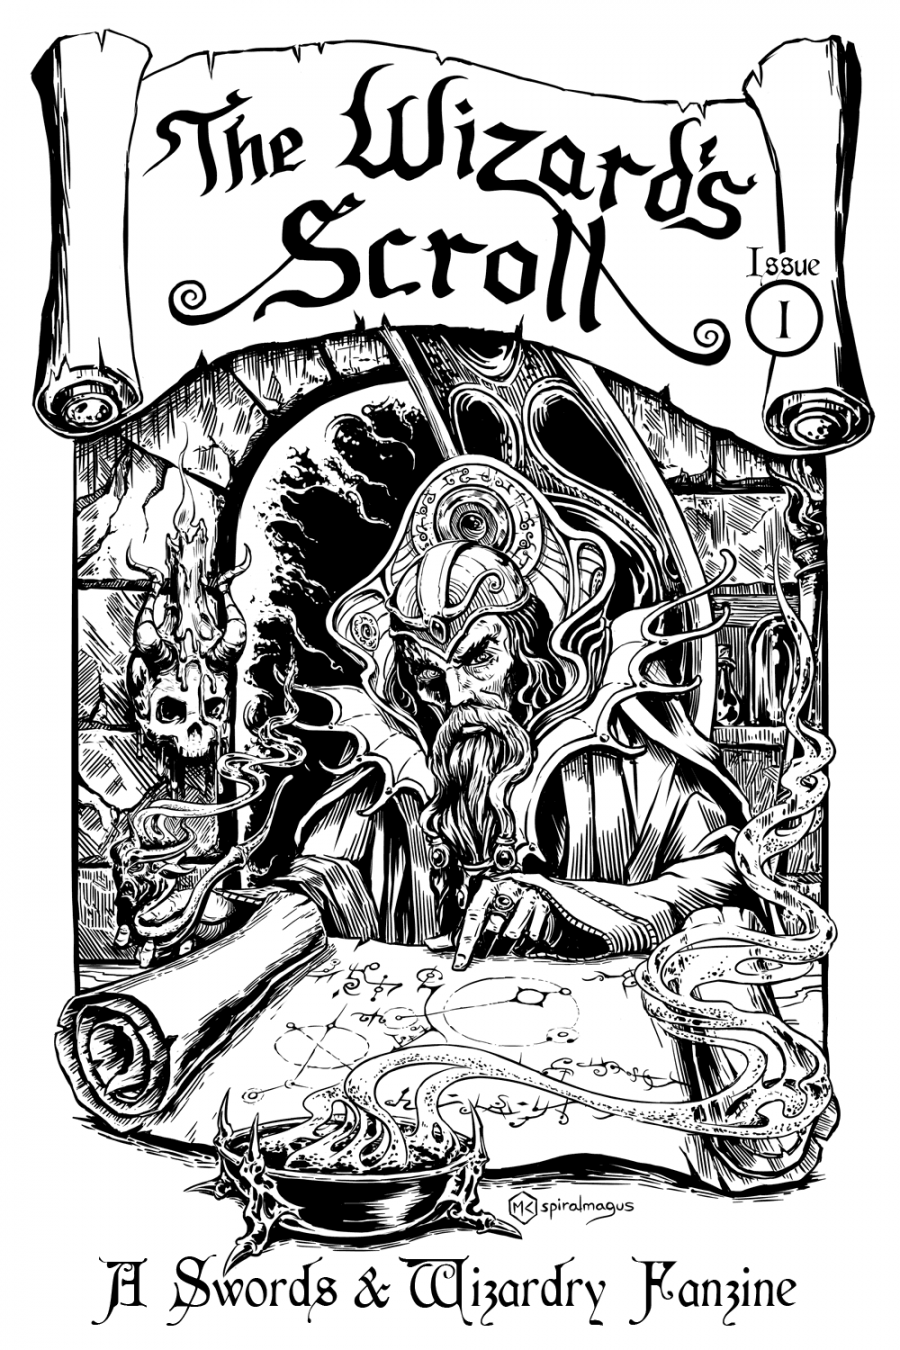 The Wizard's Scroll - Issue 1 Cover Art